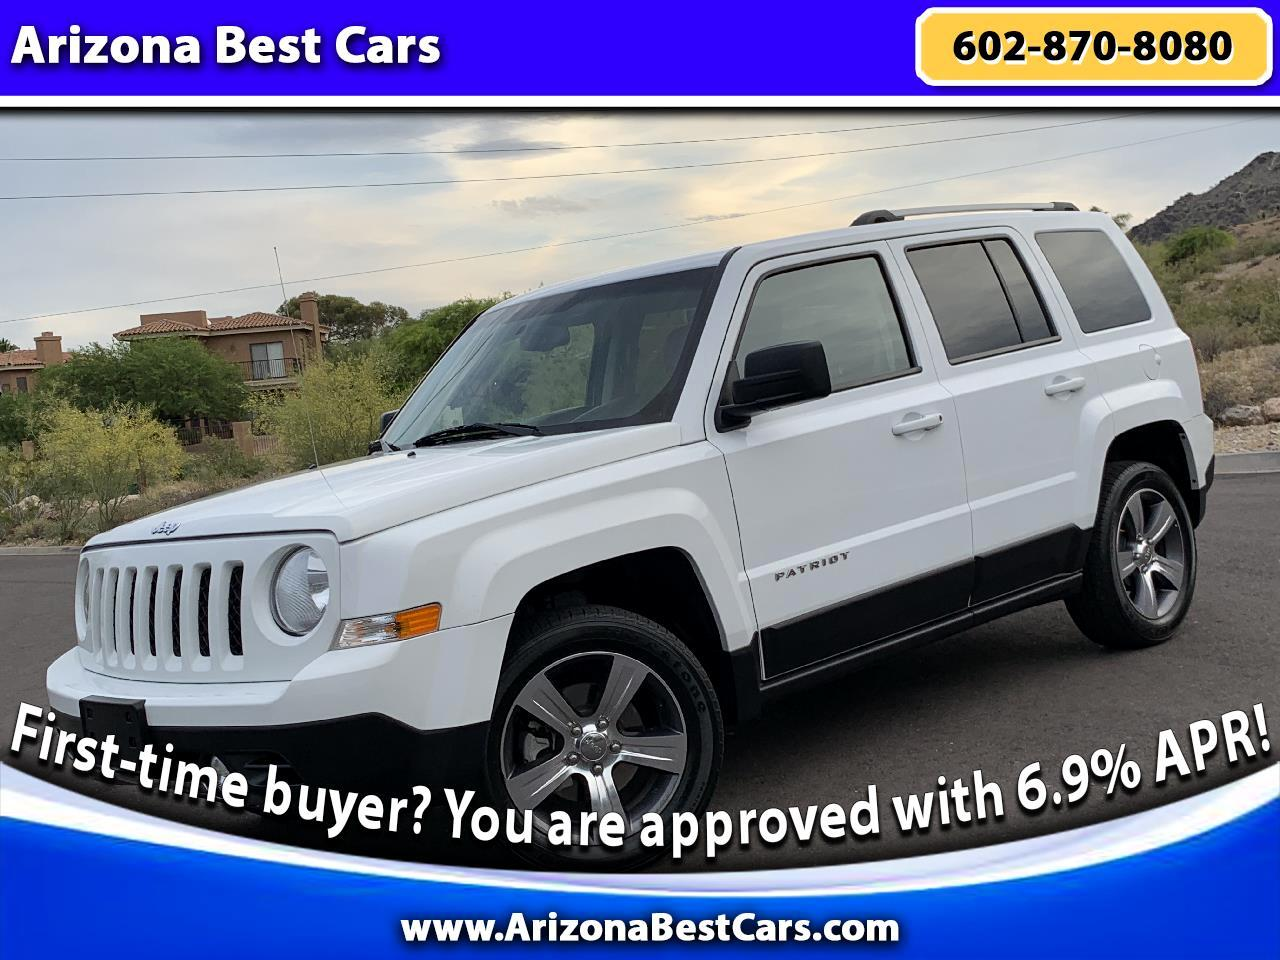 2016 Jeep Patriot FWD 4dr High Altitude